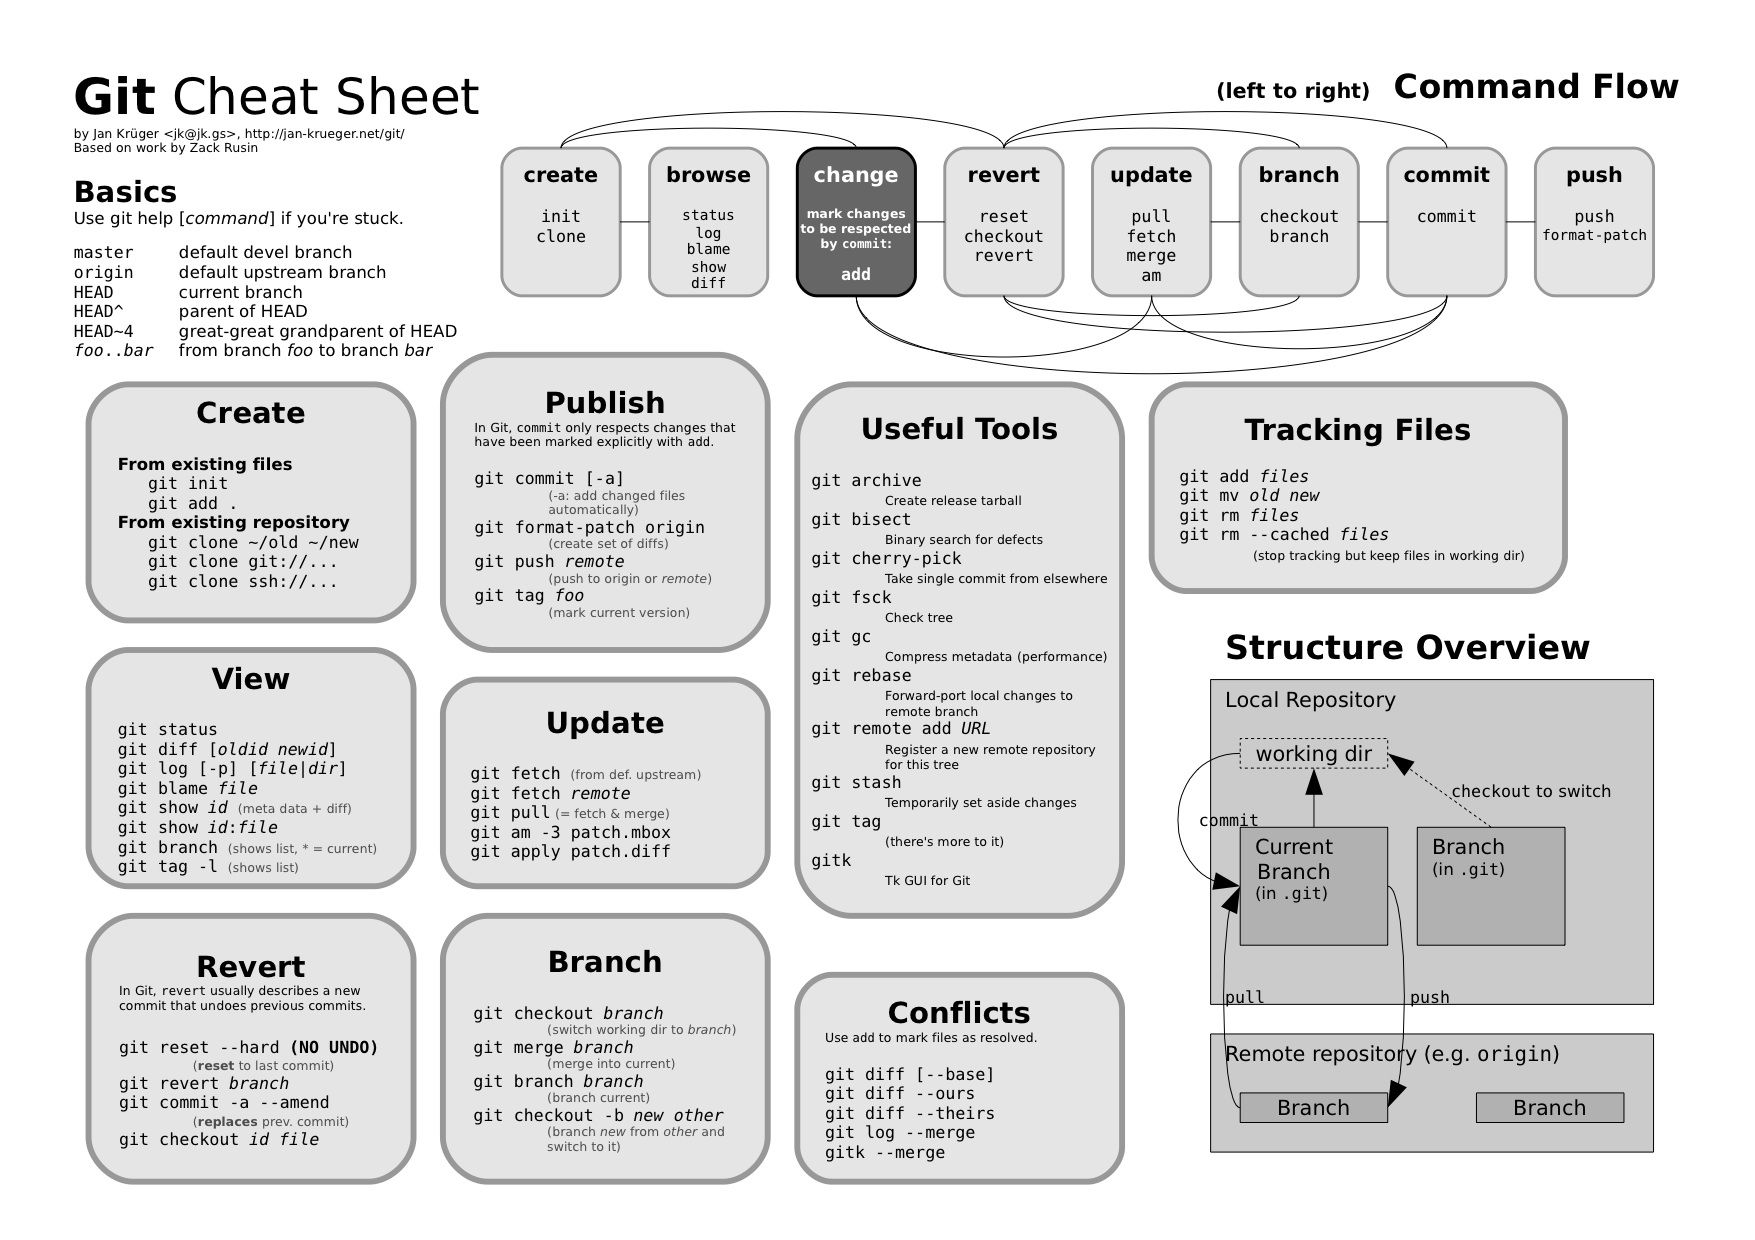 Git Cheat Sheet | Computer Workstation Cheat Sheet | Cheat